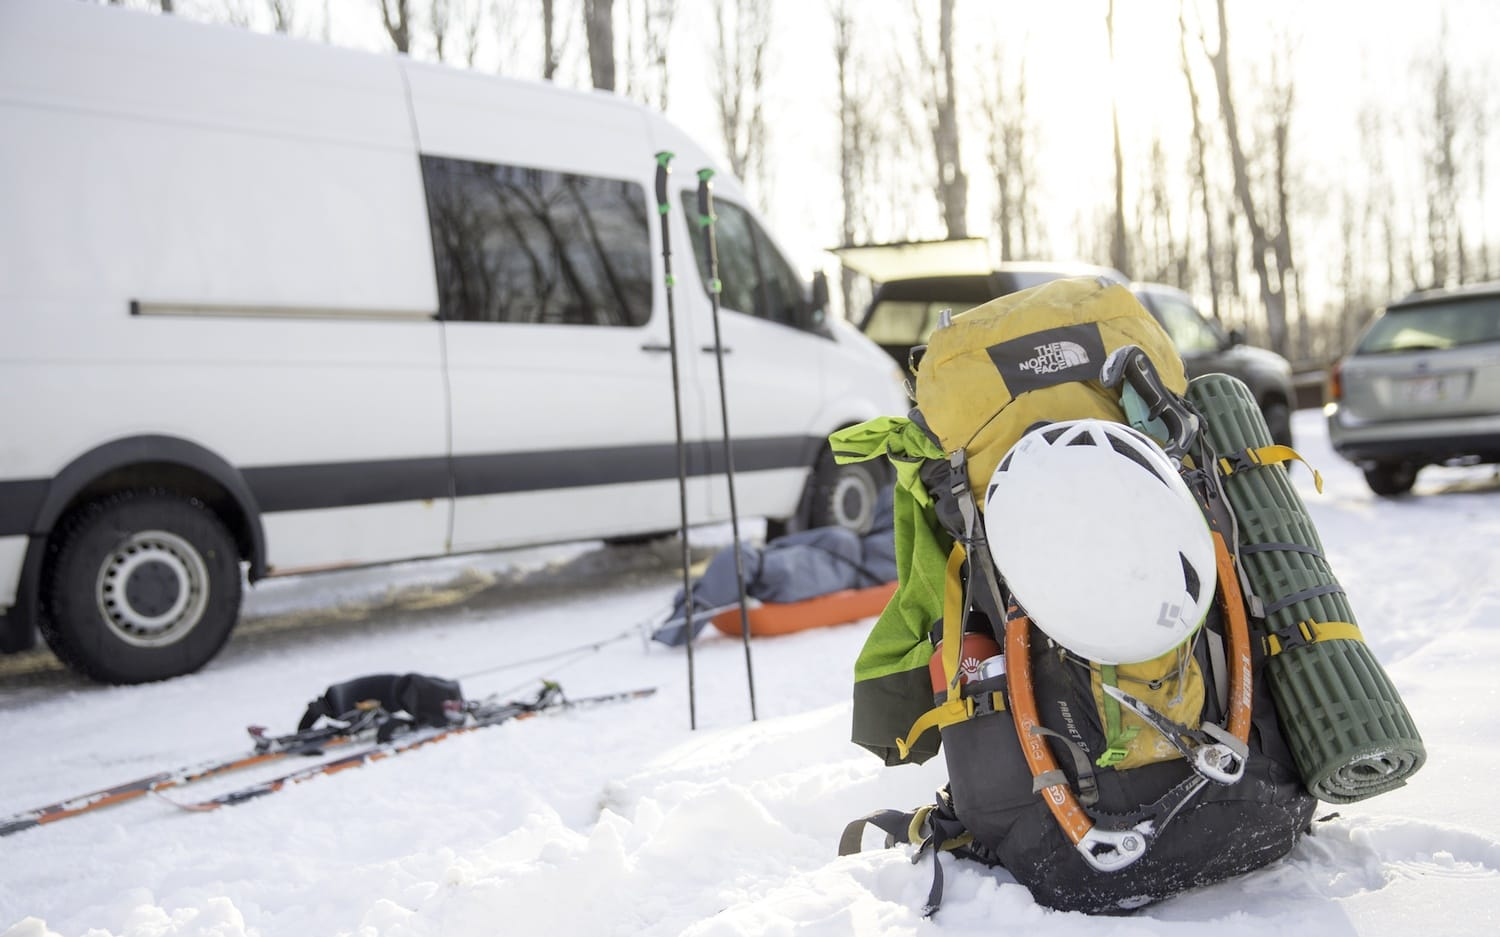 Michigan Ice Climbing, It's Not for the Faint of Heart